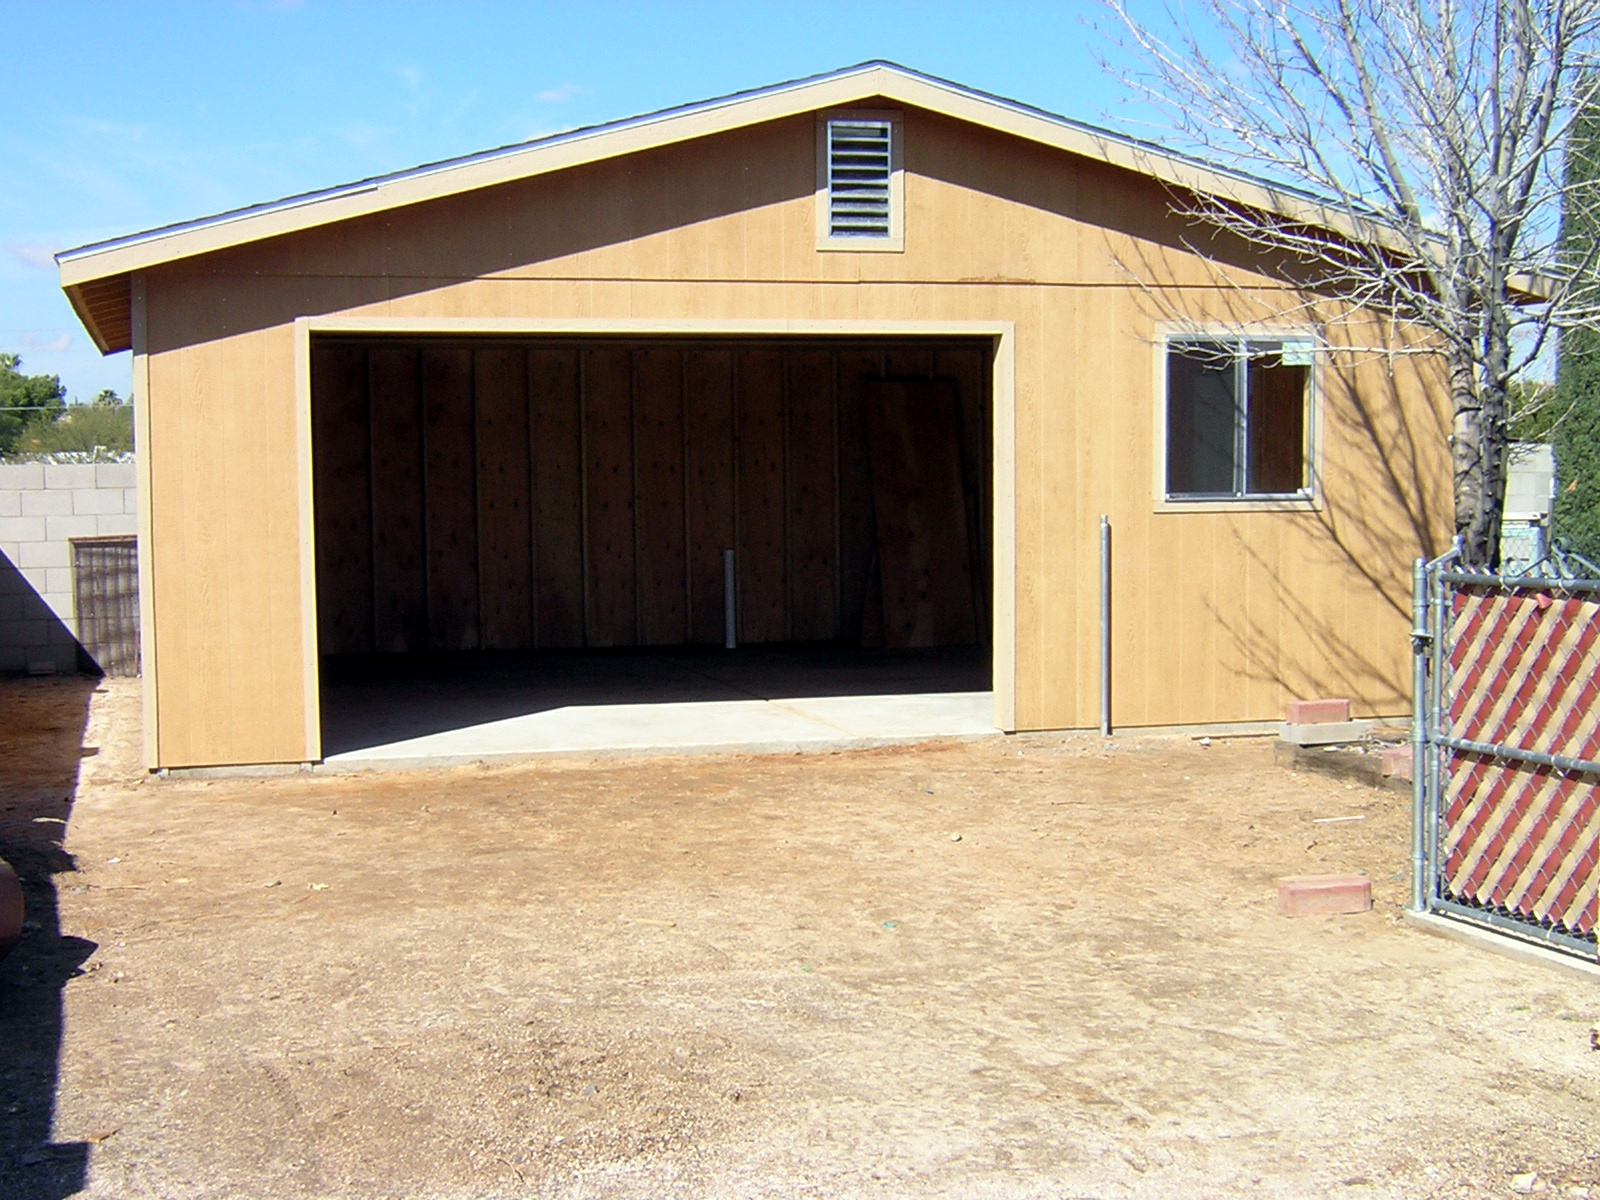 Doors To Garage: Garage Photo Galleries